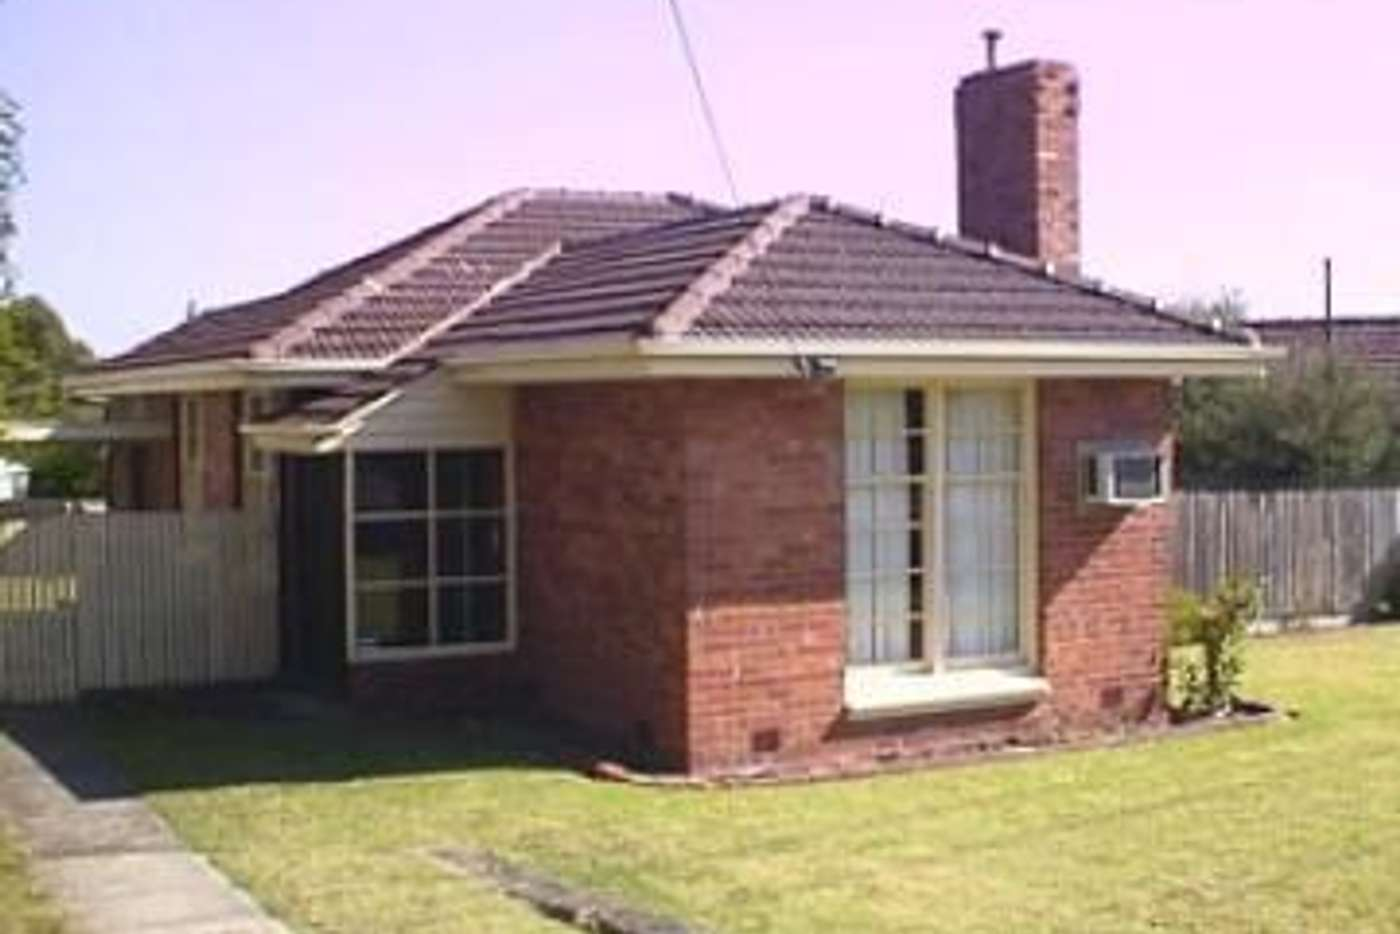 Main view of Homely house listing, 326 High Street, Ashburton VIC 3147